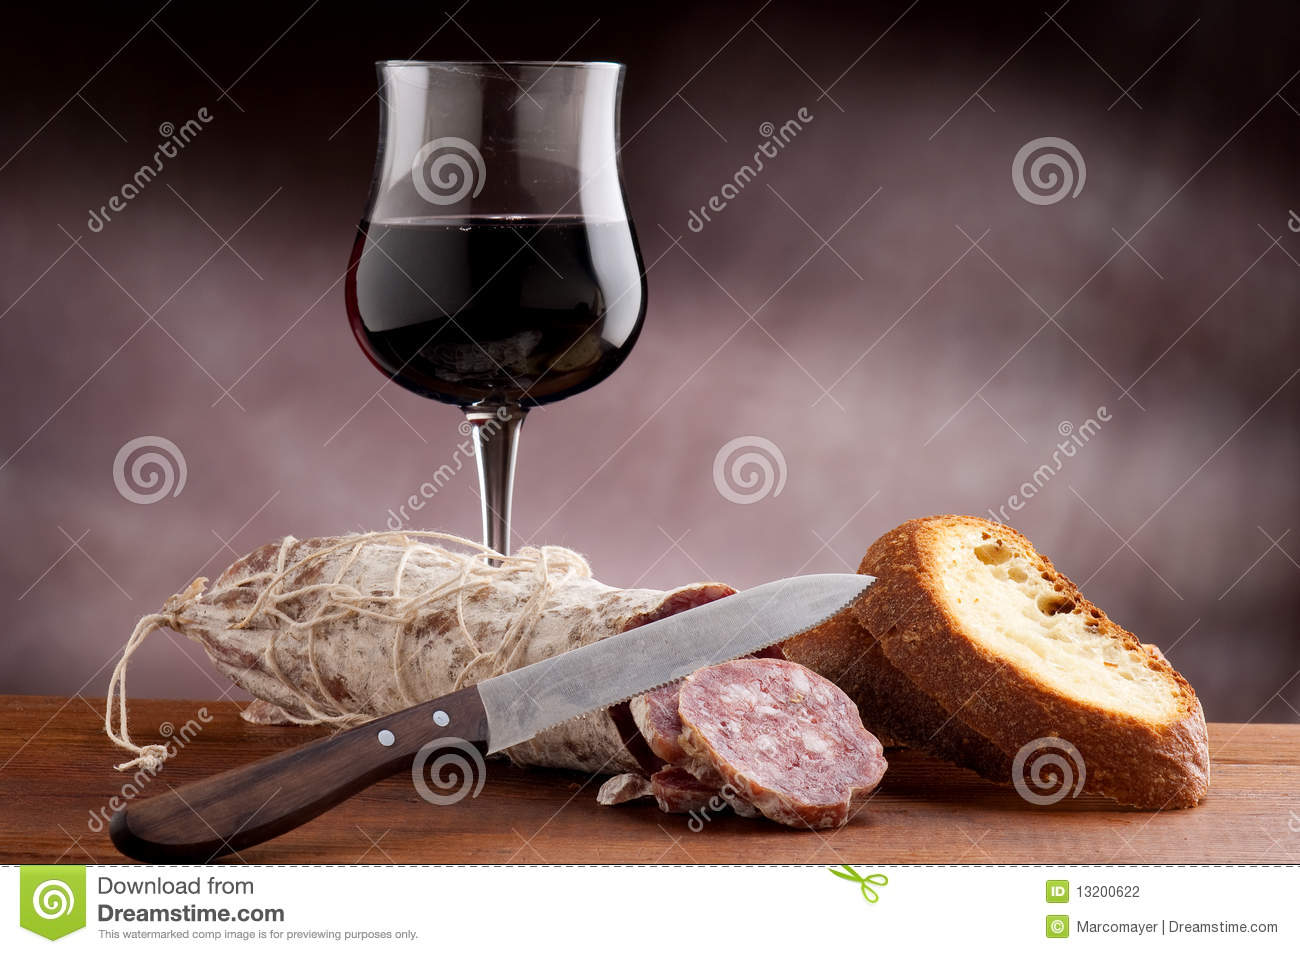 Sliced bread with salami